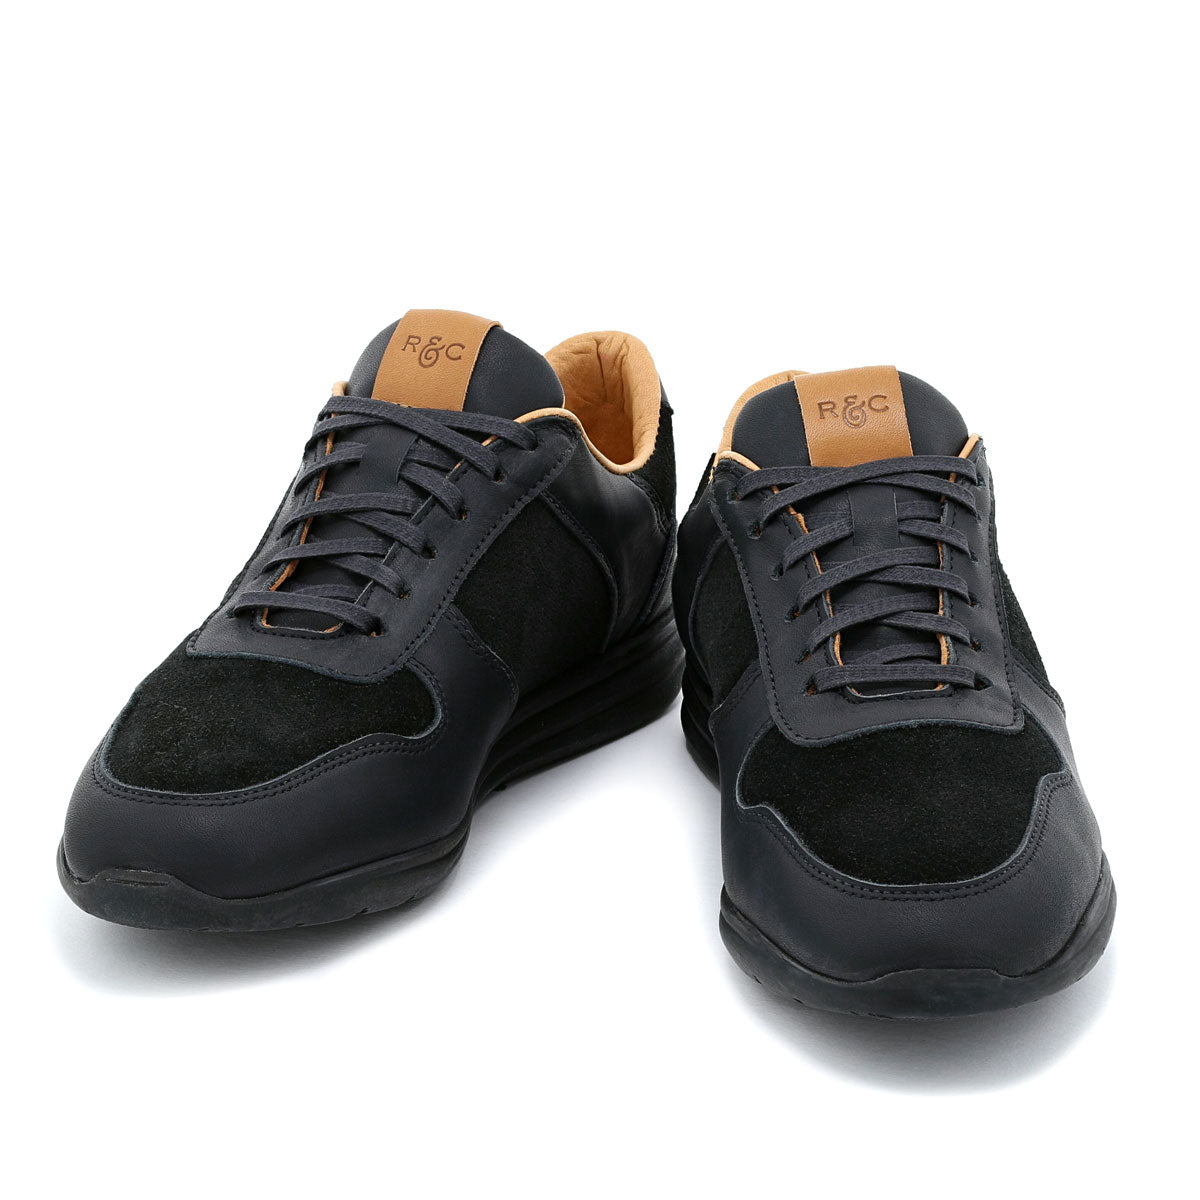 Bennett Trainer - Black Weston